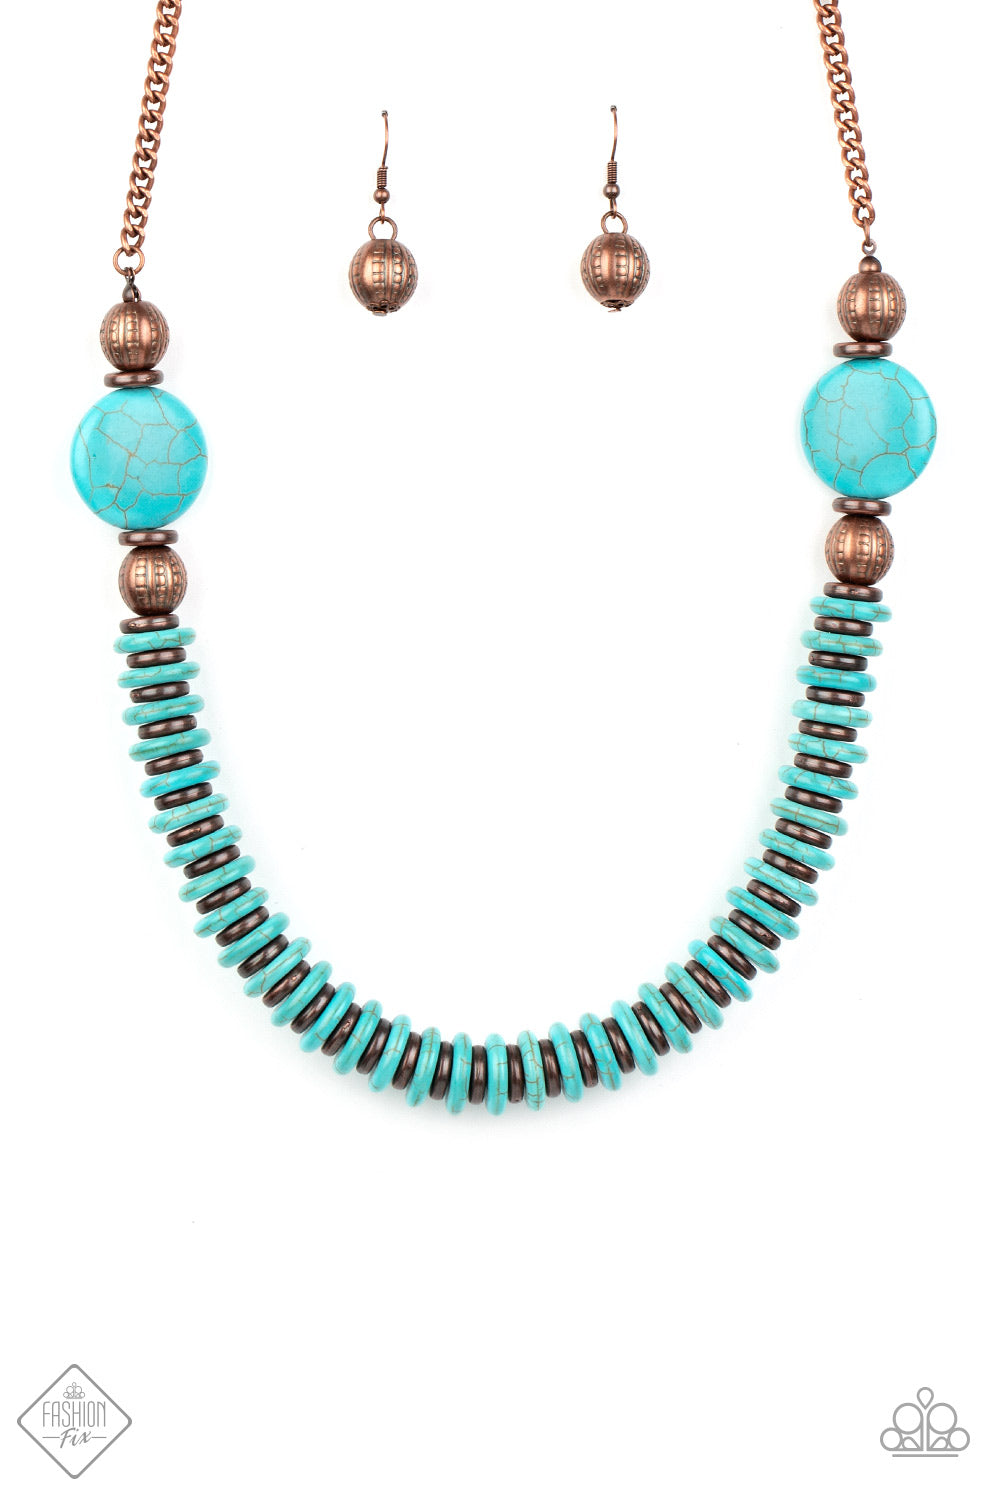 Paparazzi Necklace ~ Desert Revival - Fashion Fix Nov 2020 - Copper